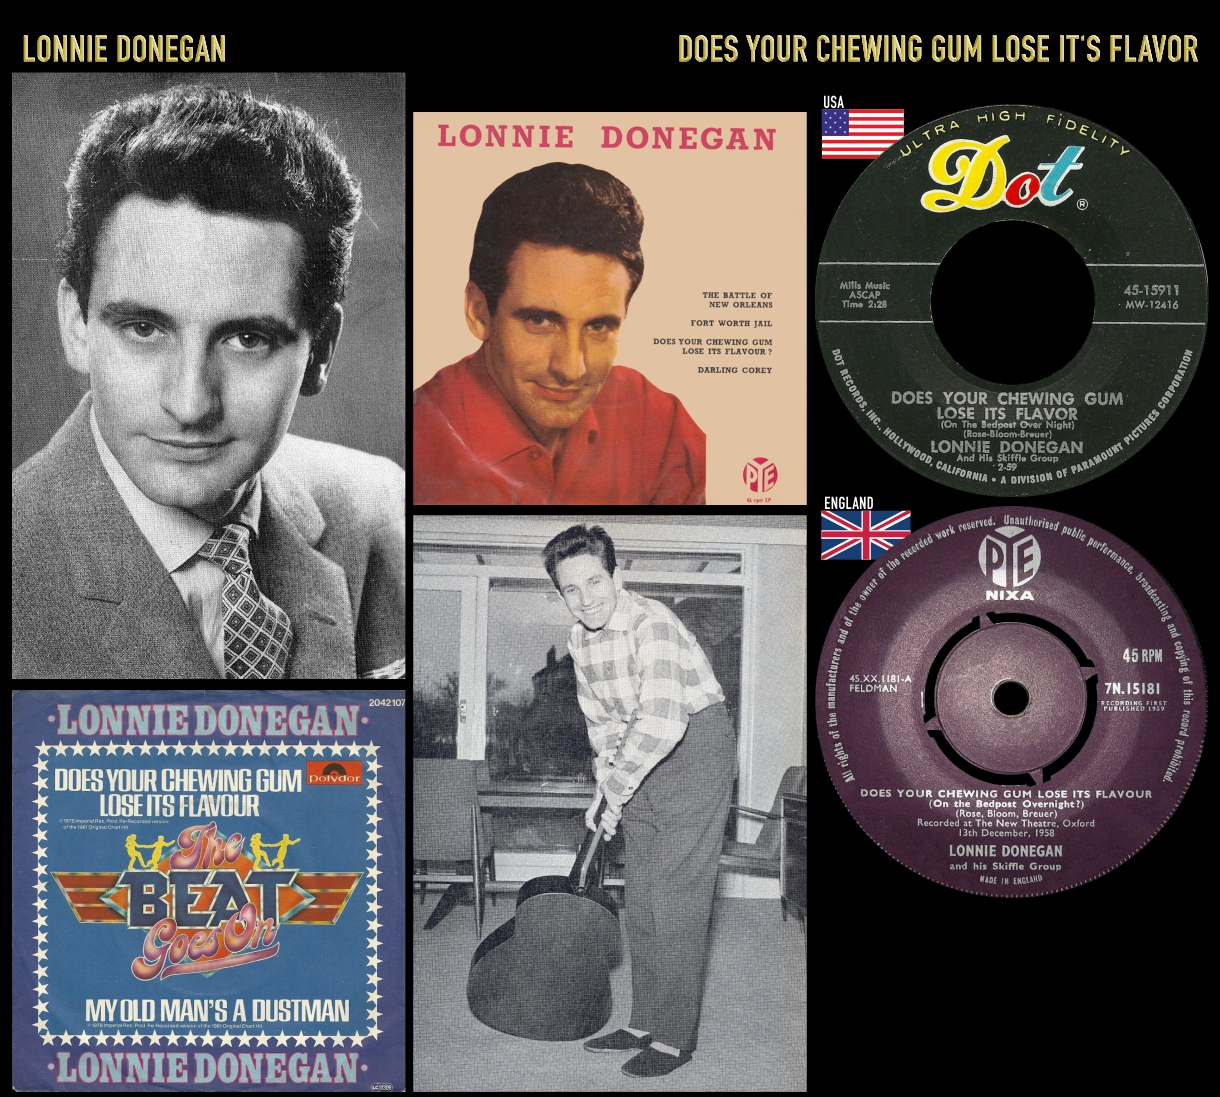 590207_Lonnie Donegan_Does Your Chewing Gum Lose It's Flavor